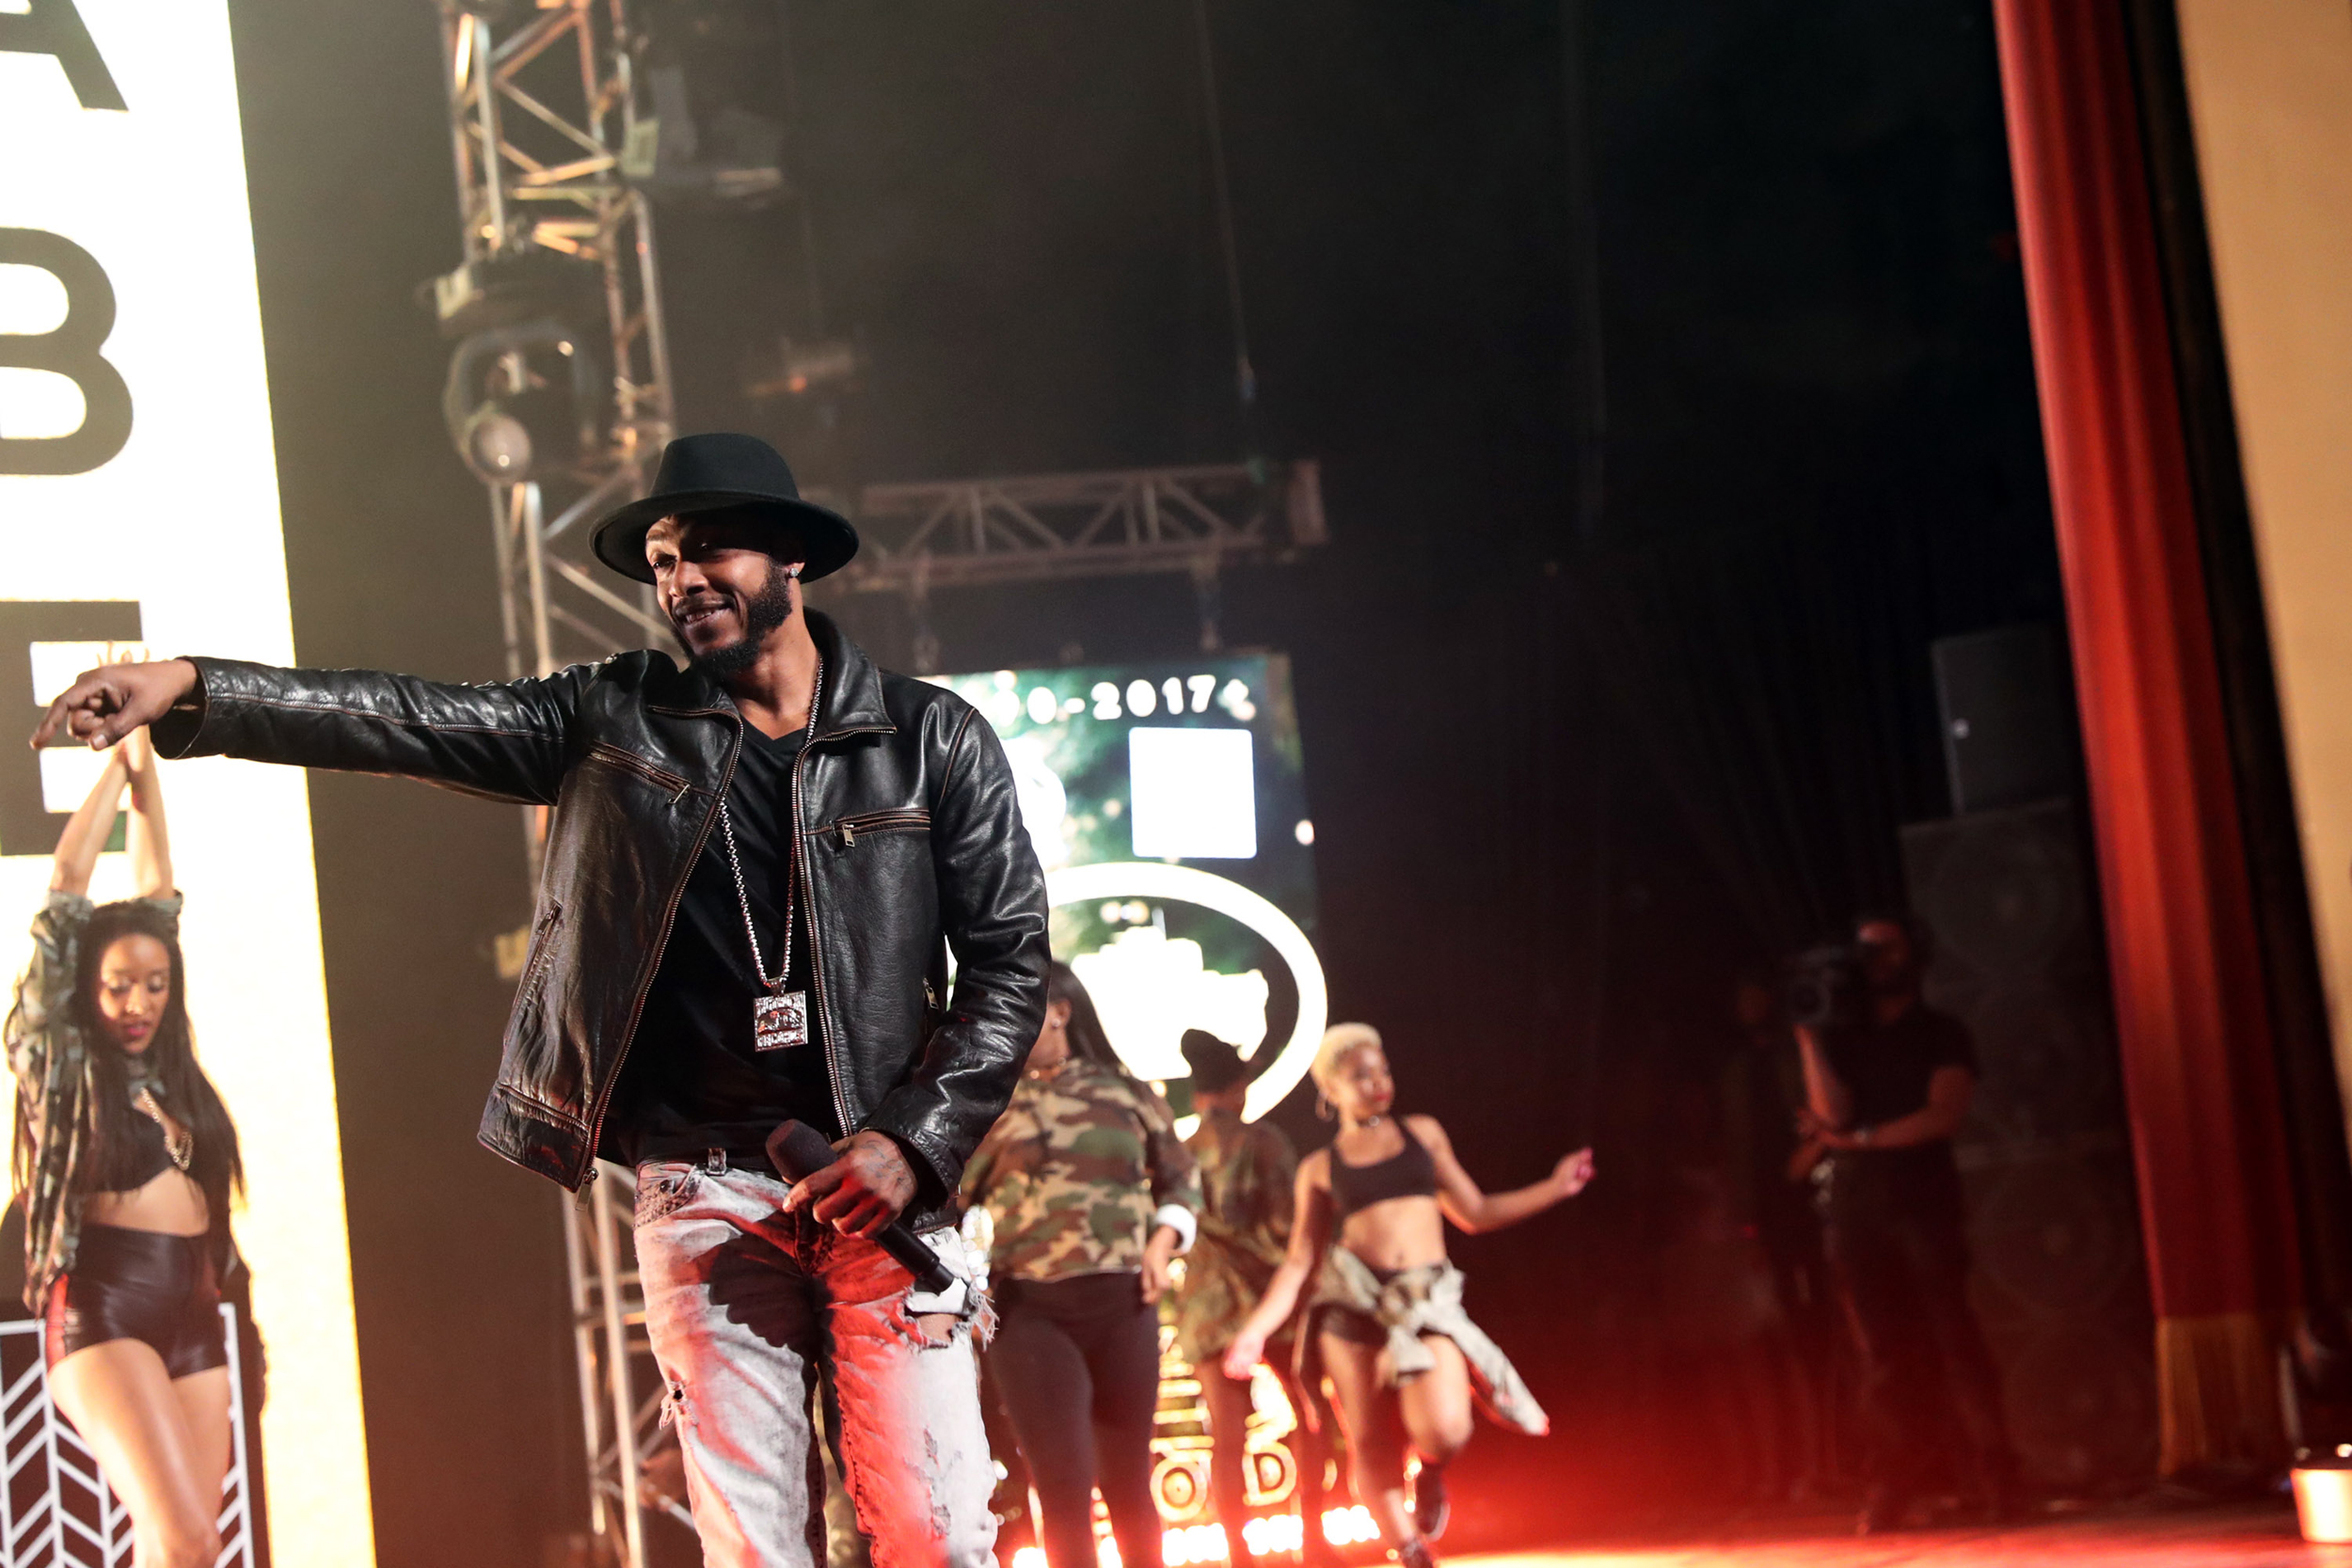 Mystikal performs at the 5th Annual Global Spin Awards at The Orpheum Theatre on February 16, 2017 in New Orleans, Louisiana.